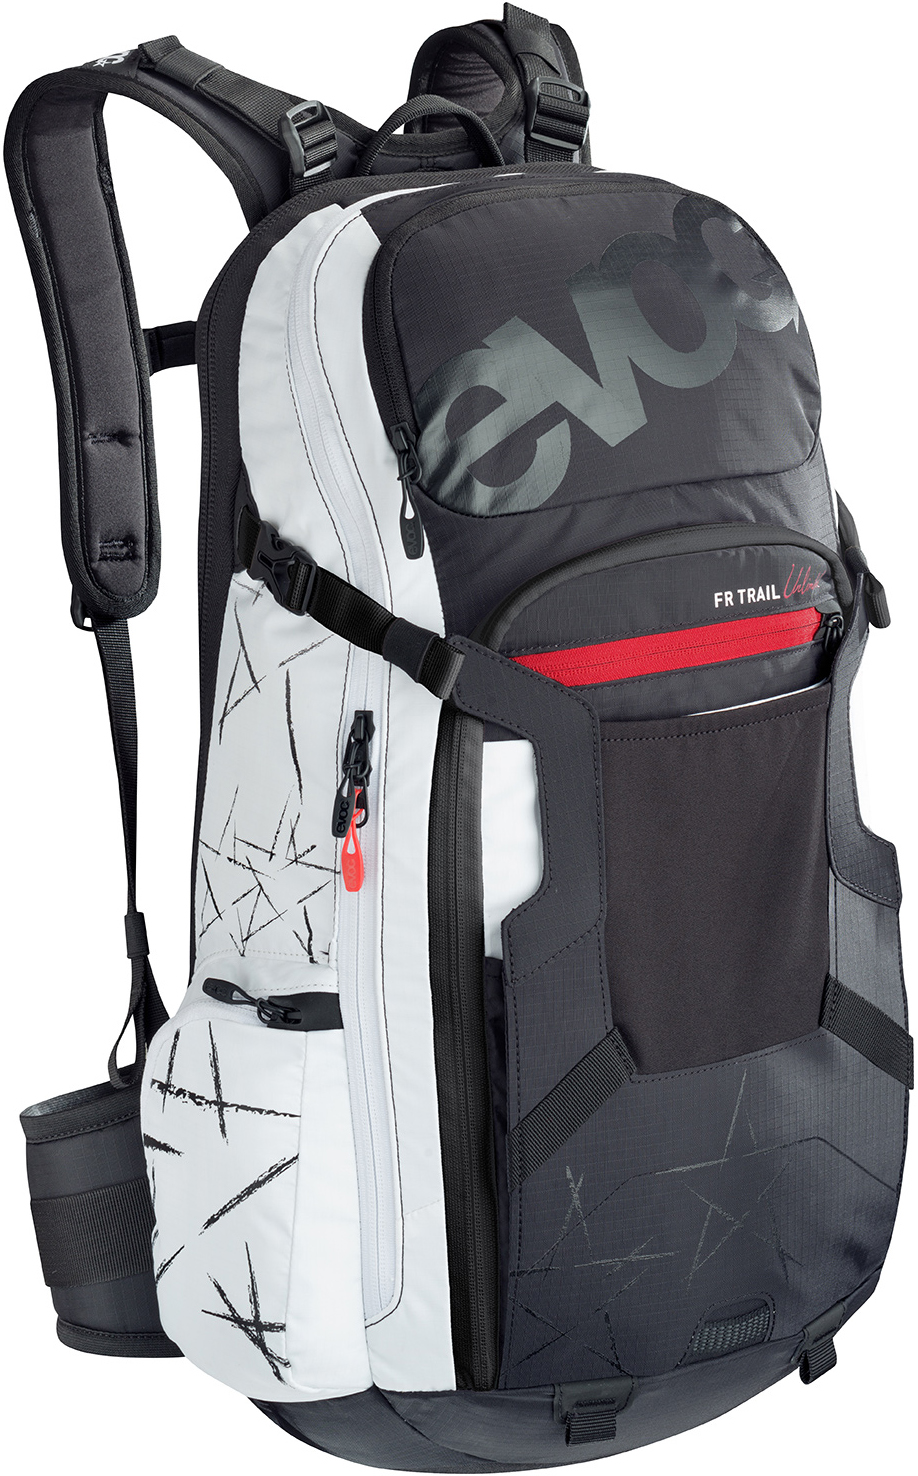 Hydration backpack Evoc Trail 2017 - Back protector